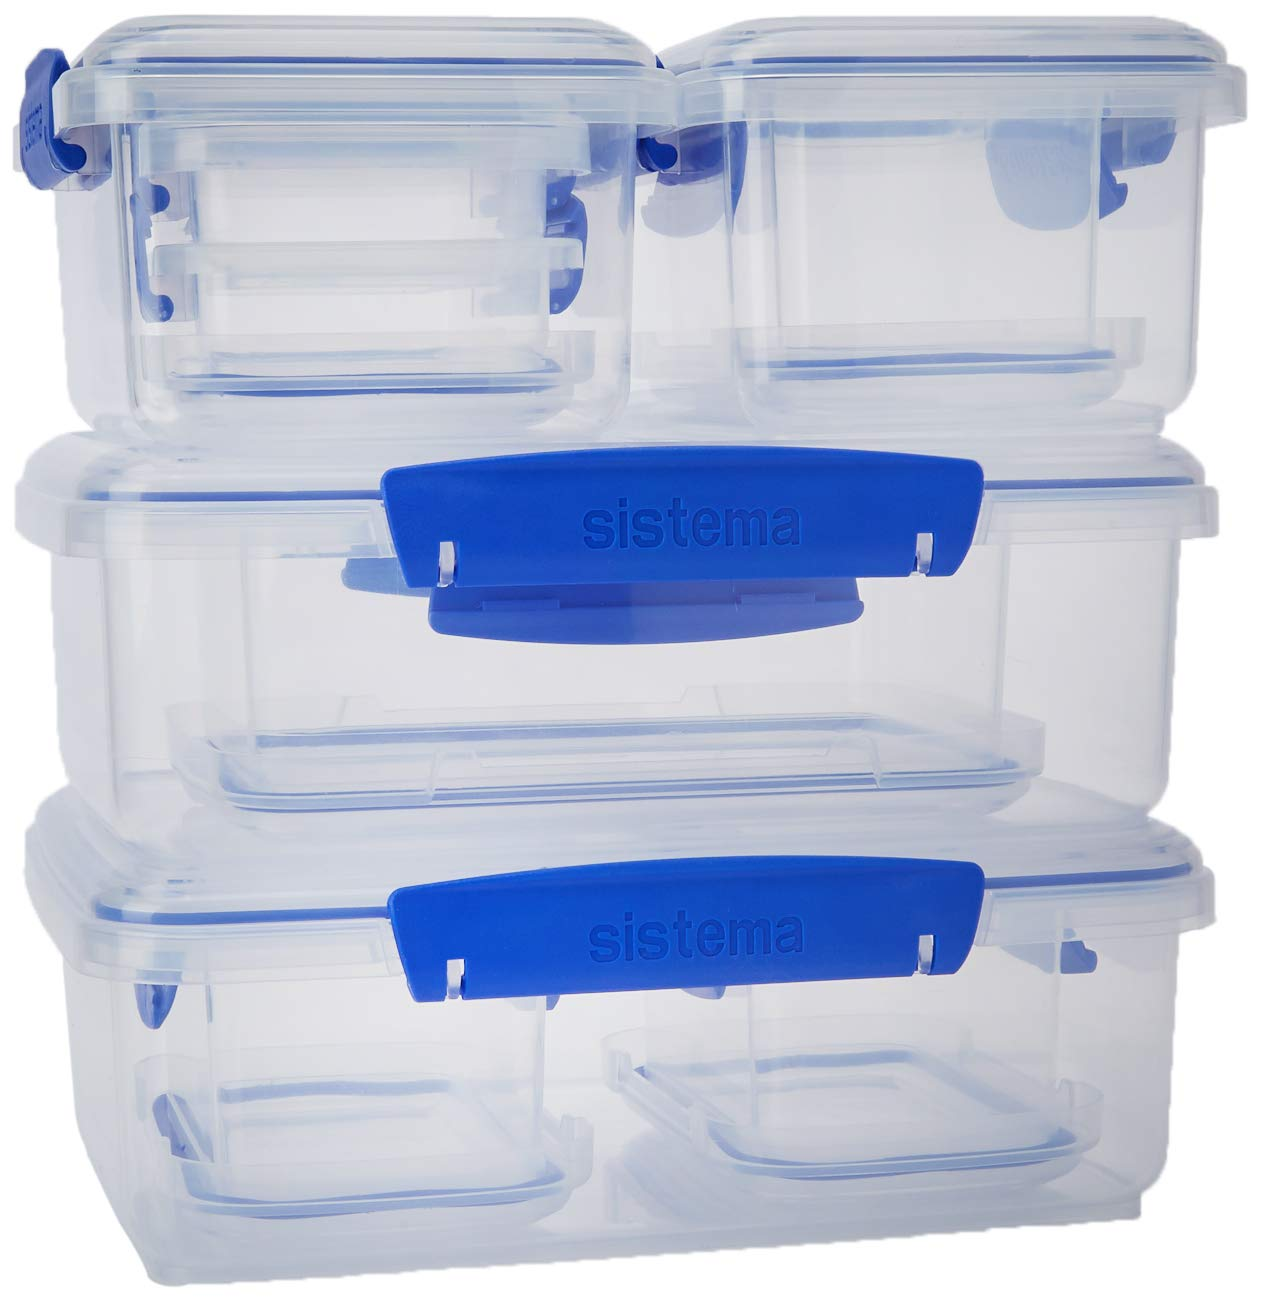 Plastic Food Storage Airtight Containers Storables